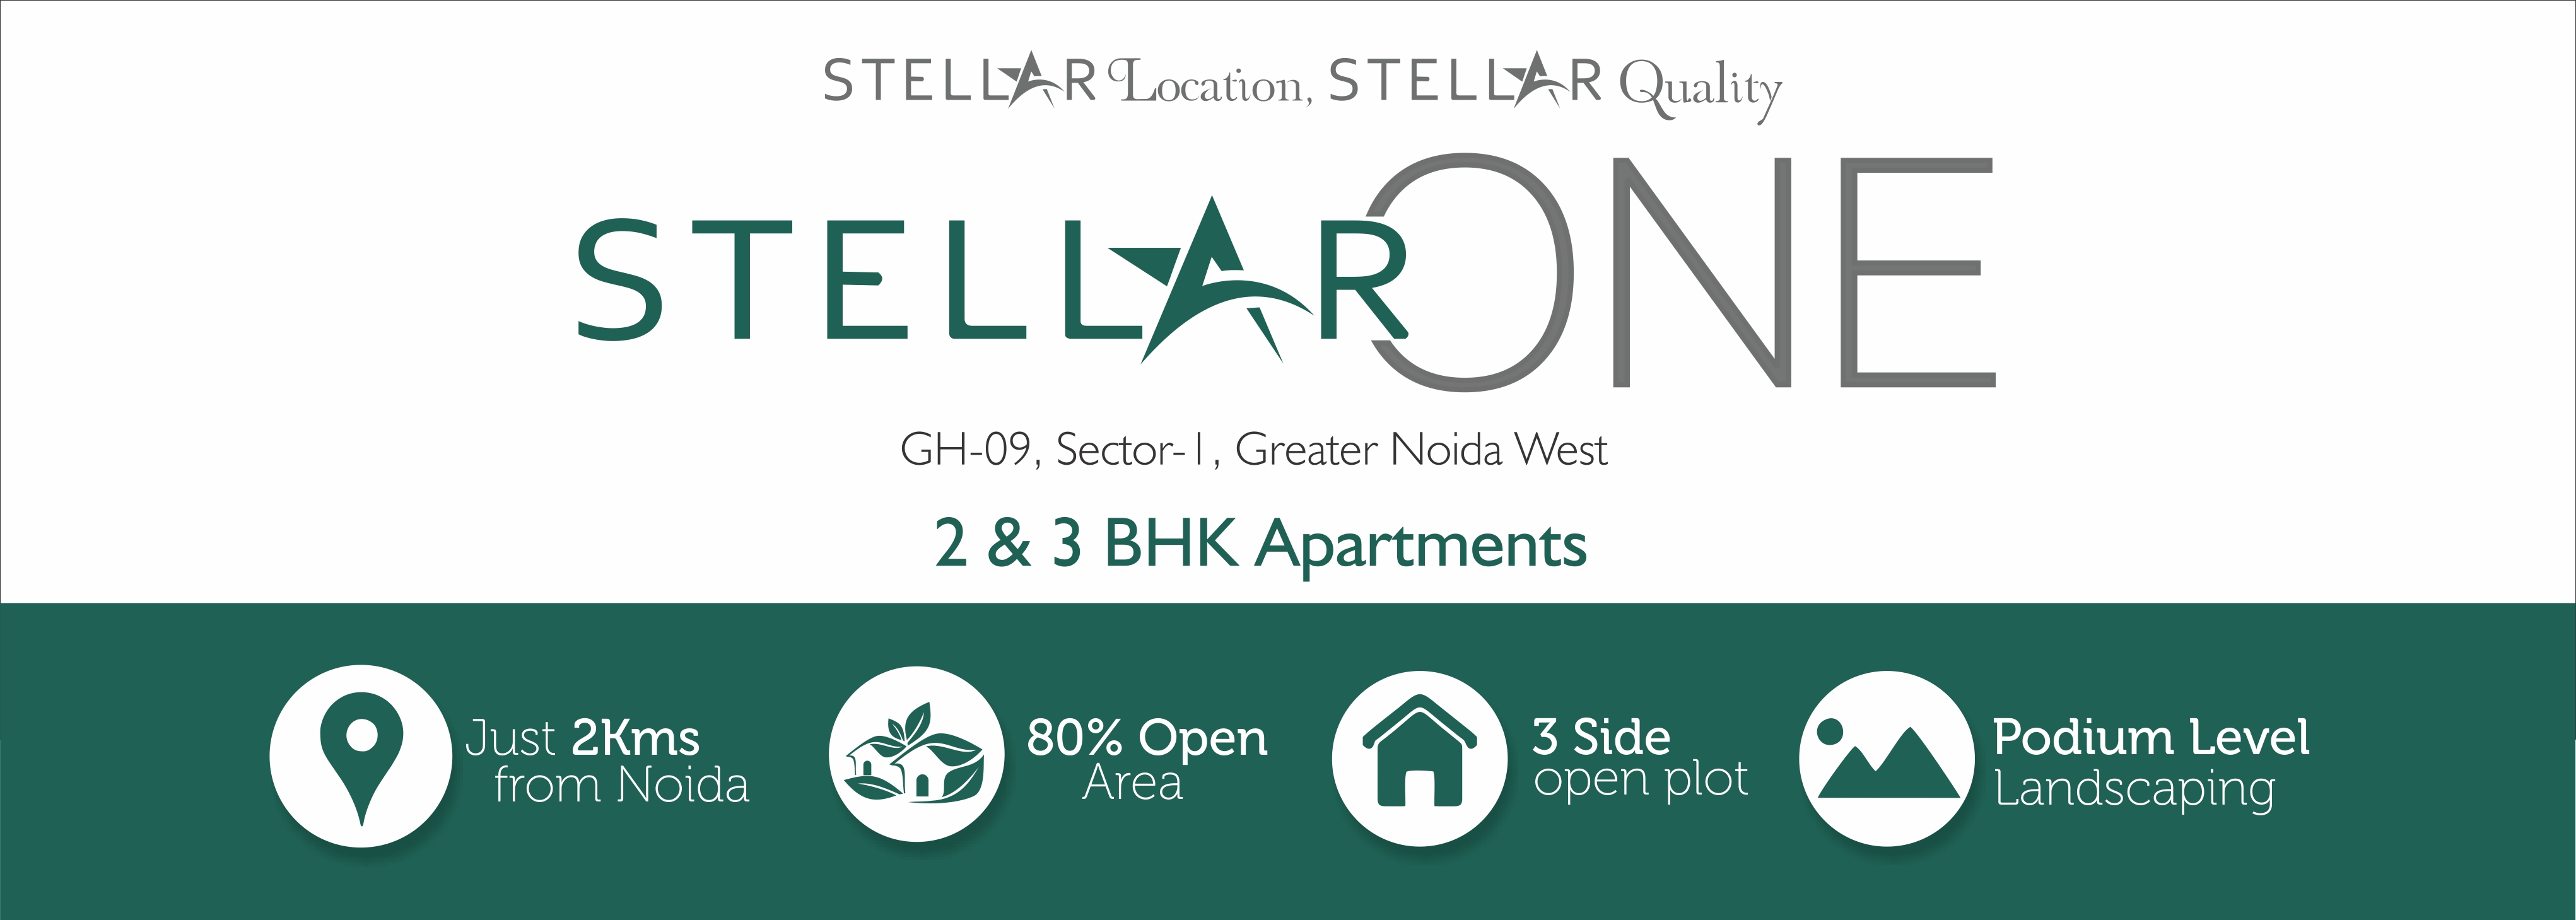 stellar one 2BHK and 3BHK